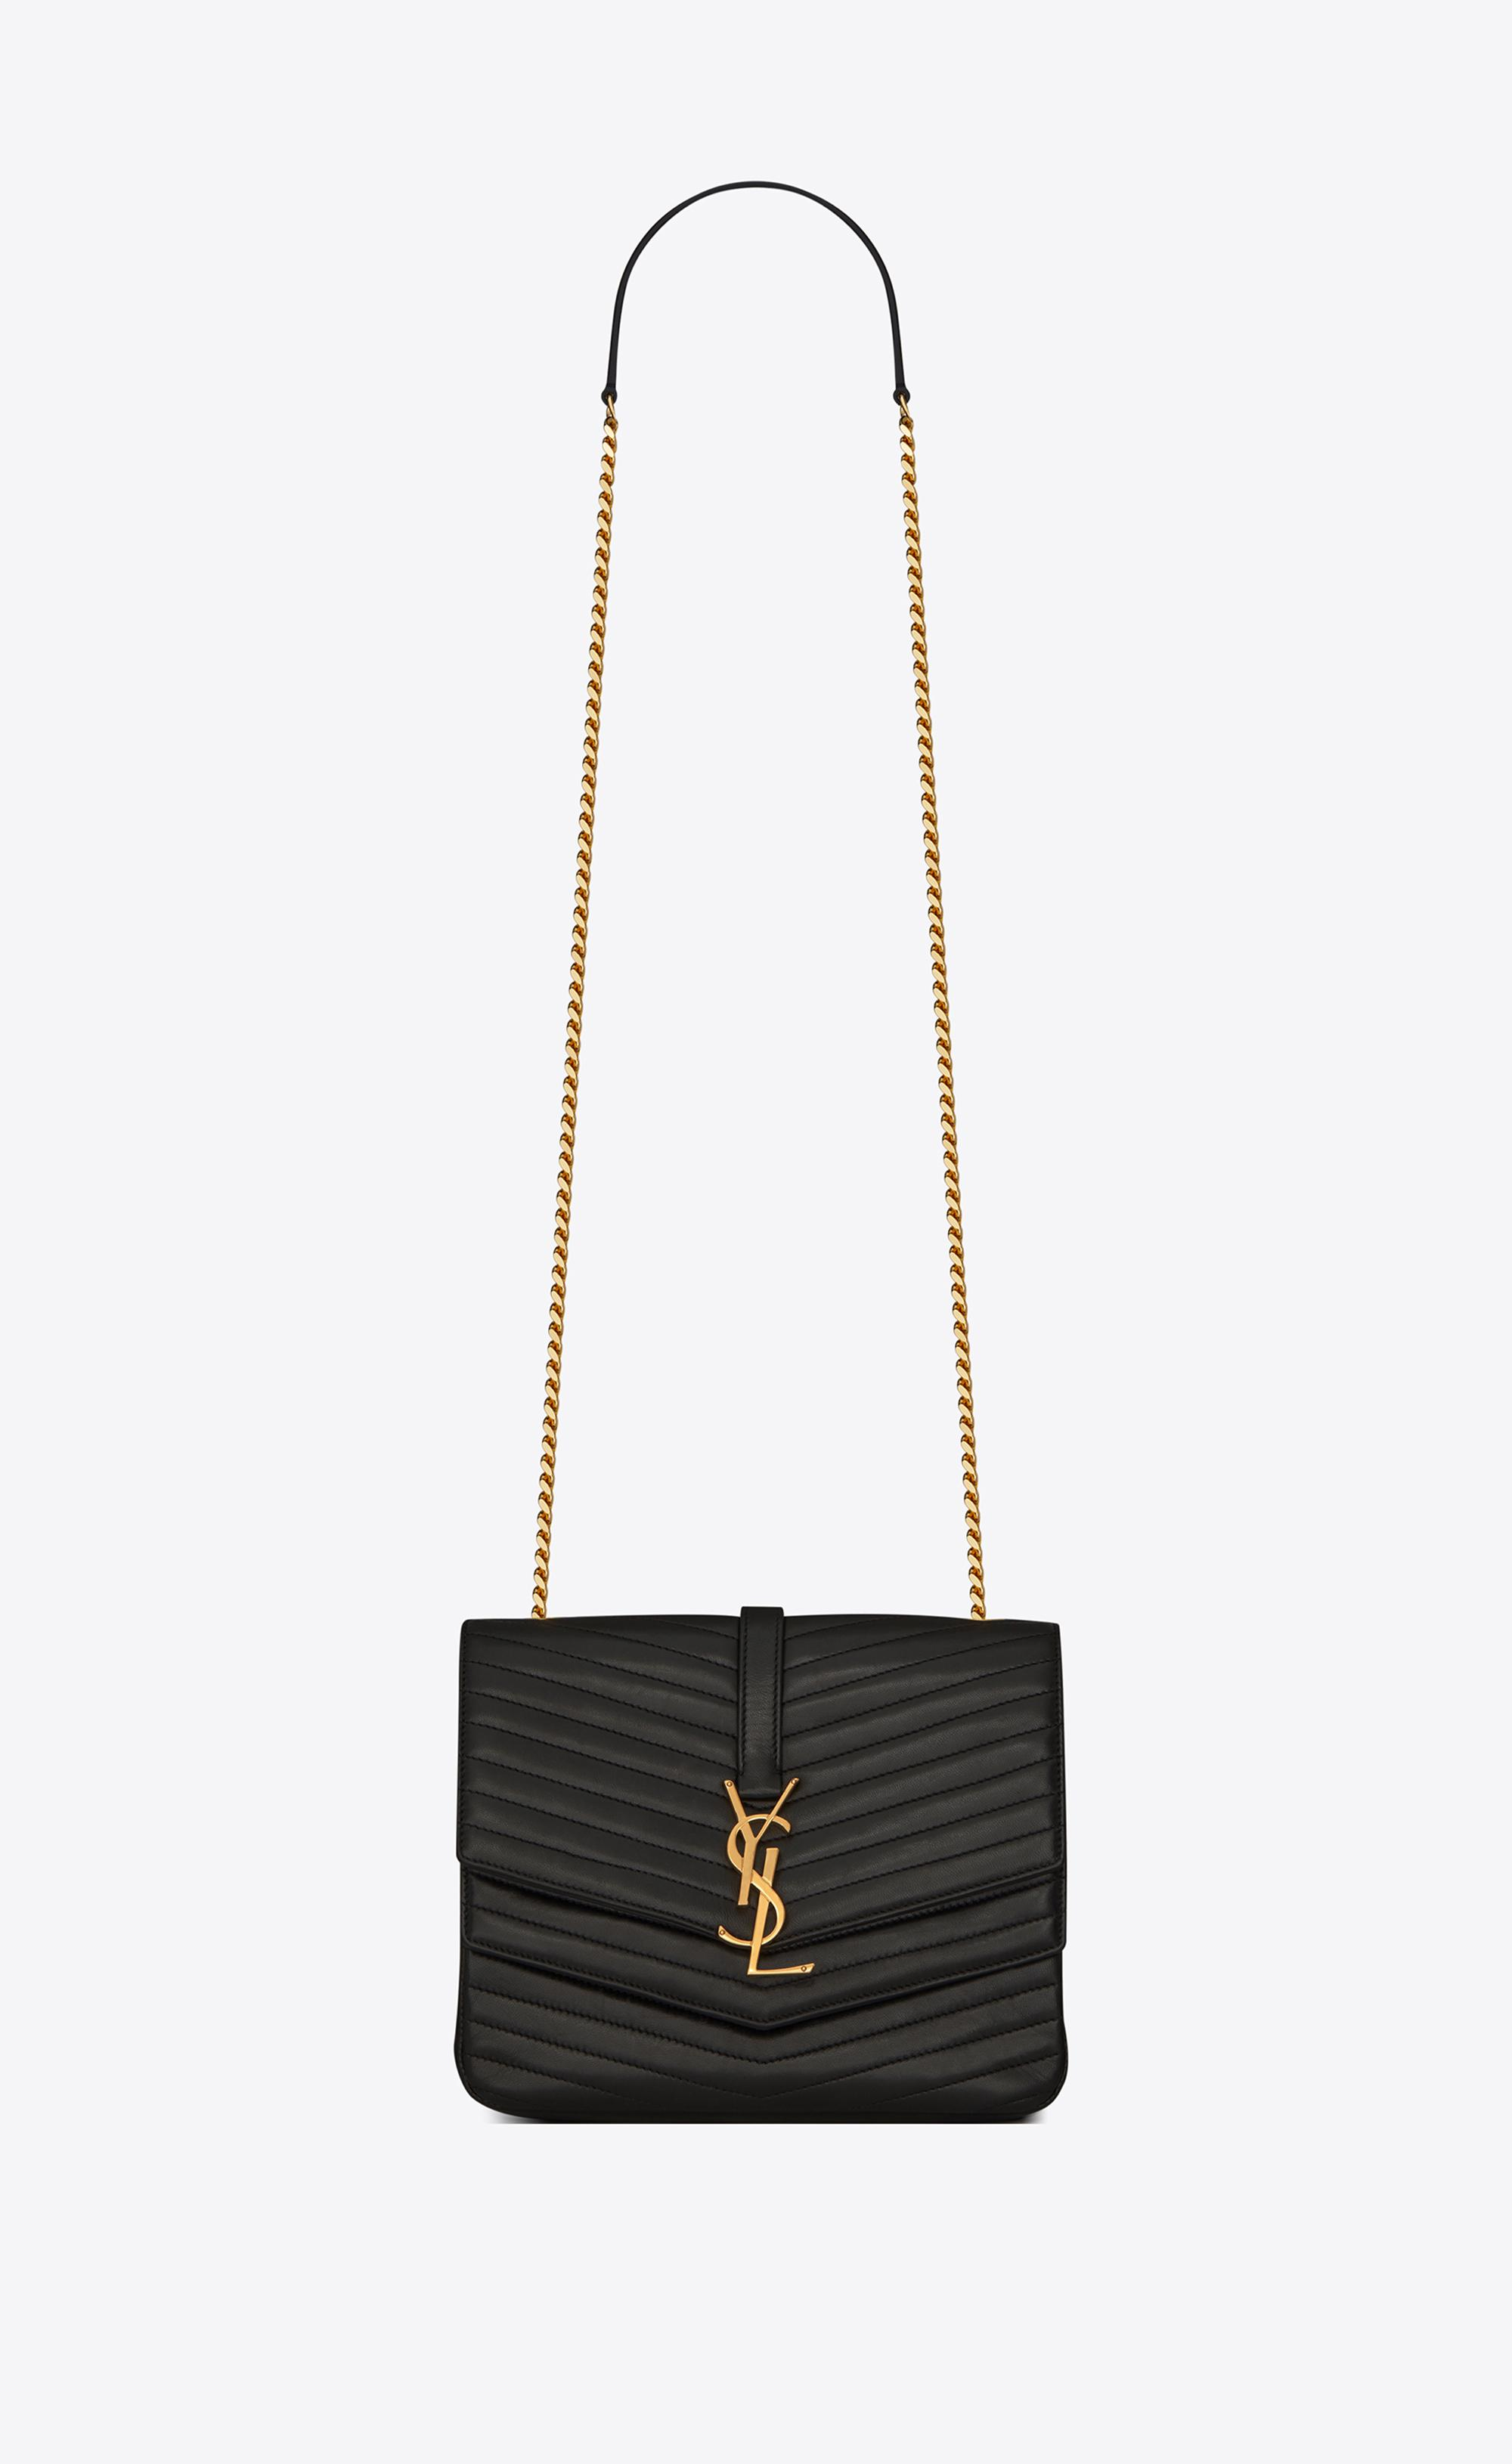 73c0b42fb3b5e Lyst - Saint Laurent Sulpice Medium in Black